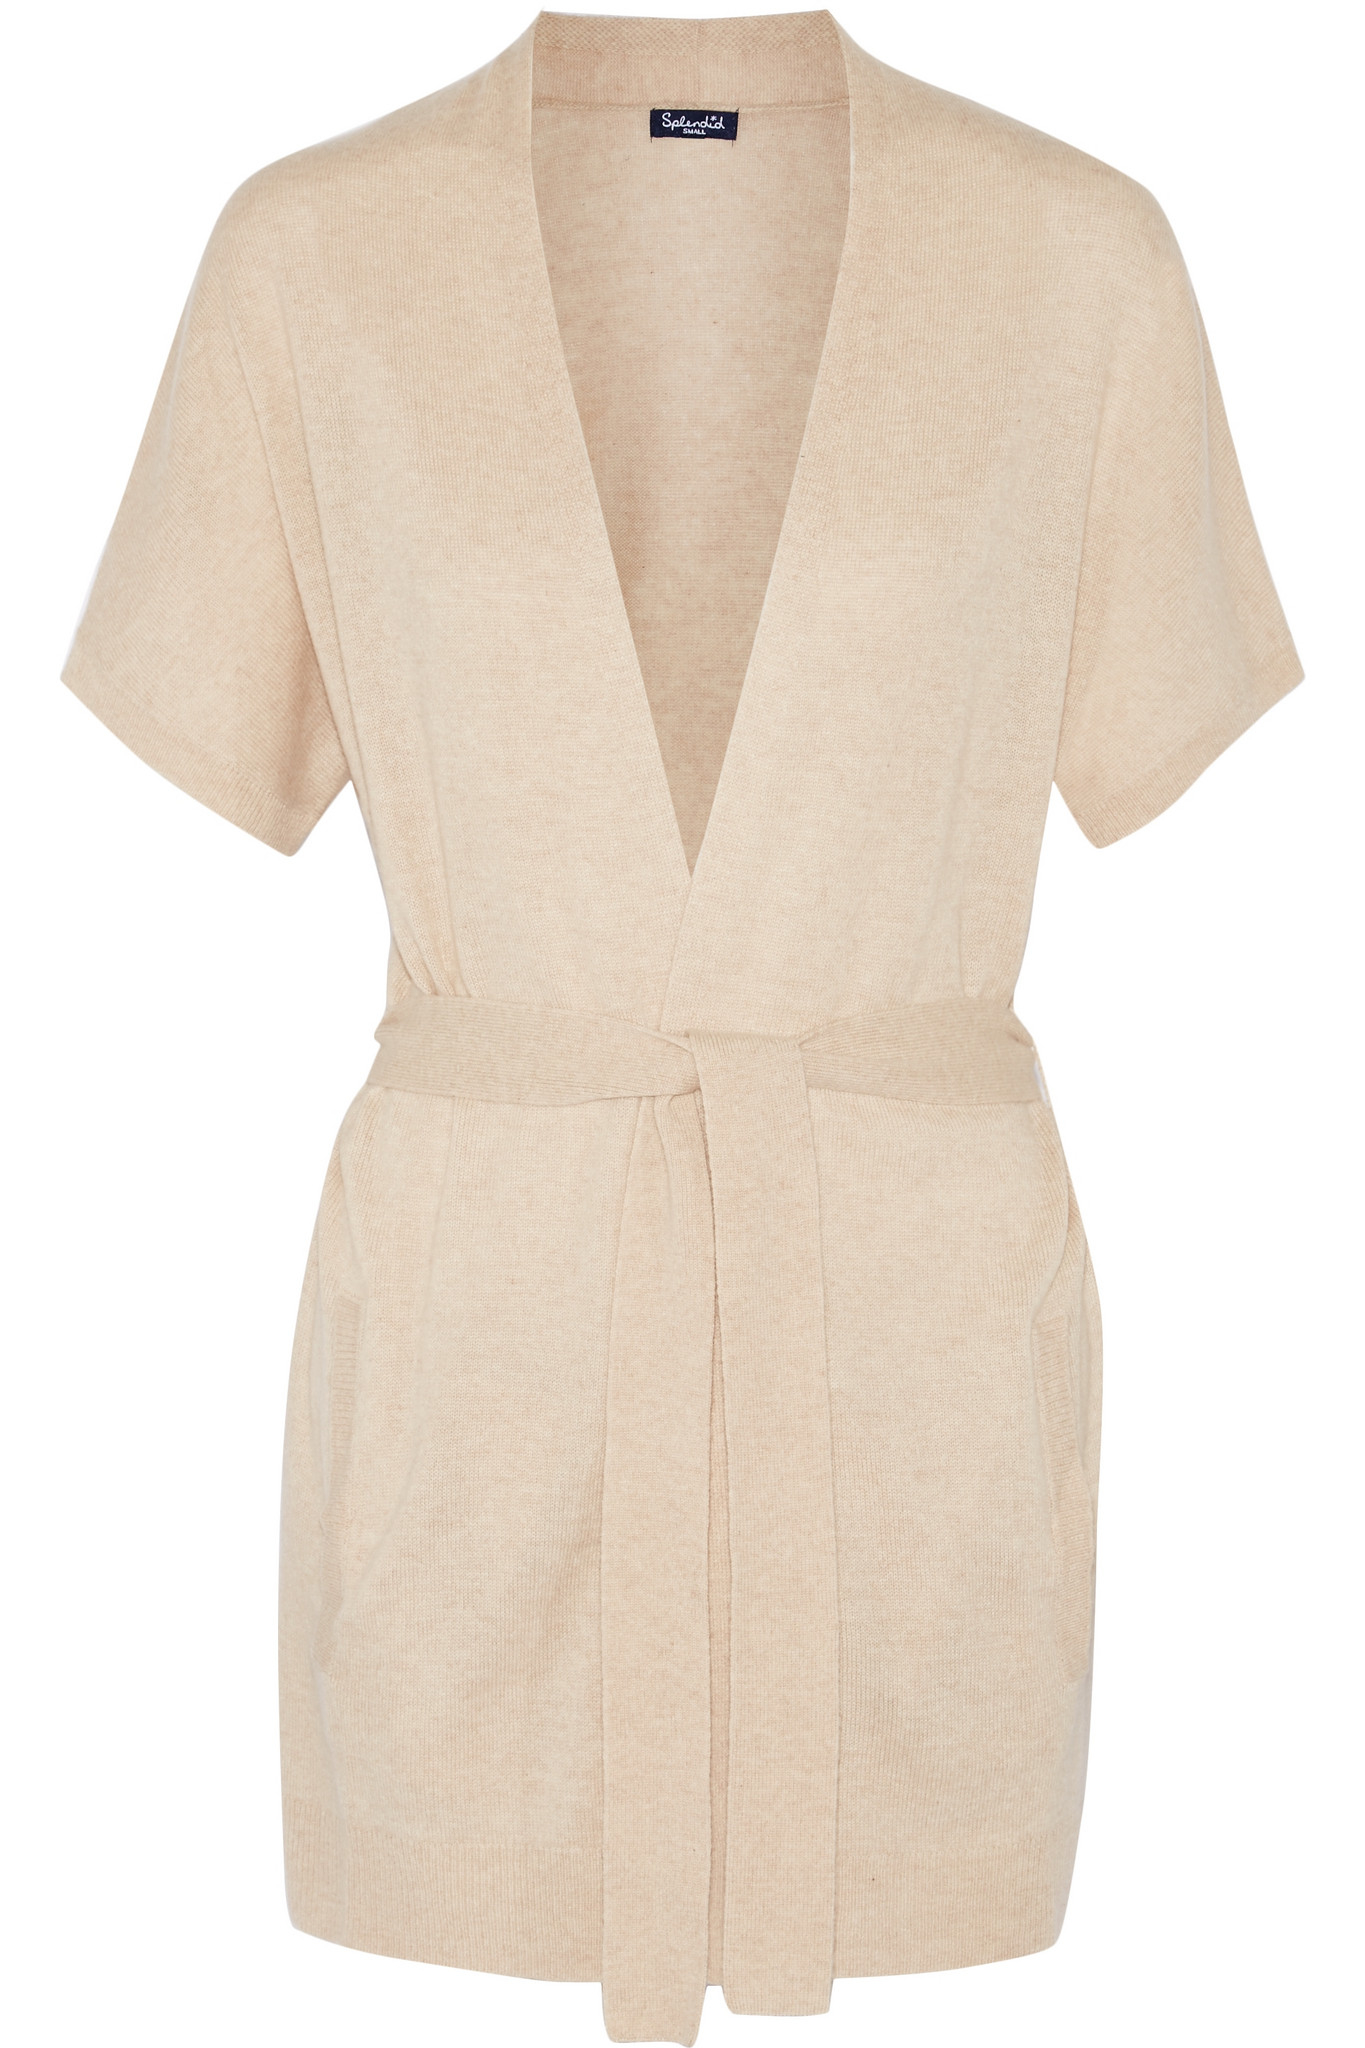 Splendid Belted Cashmere Cardigan in Natural | Lyst